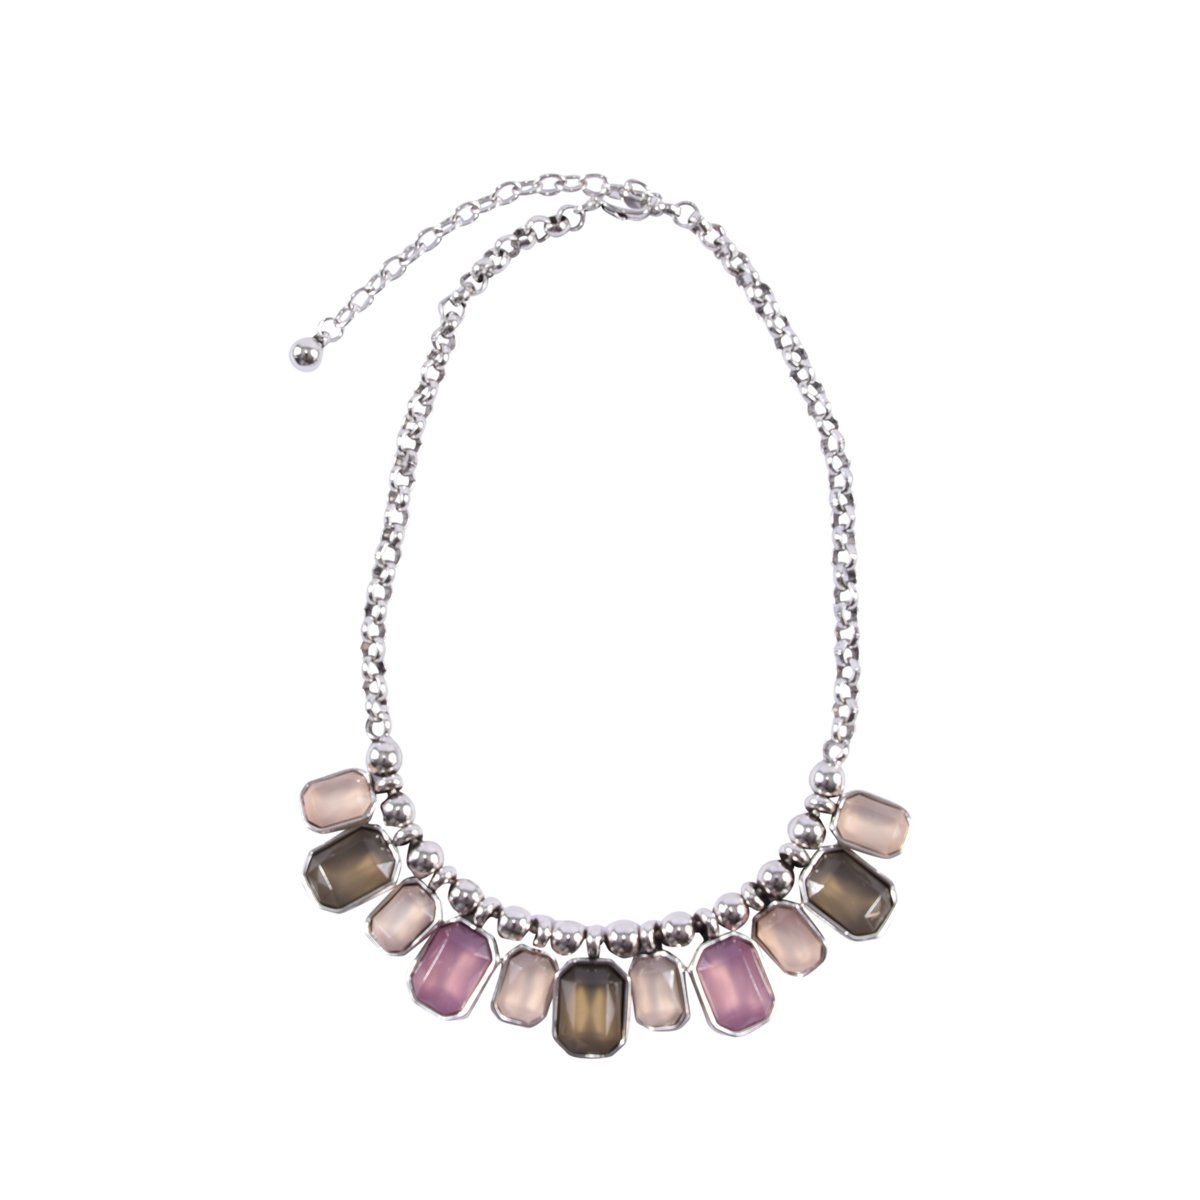 Silver Tone Smoky Brown Lavender Beige Bib Statement Necklace